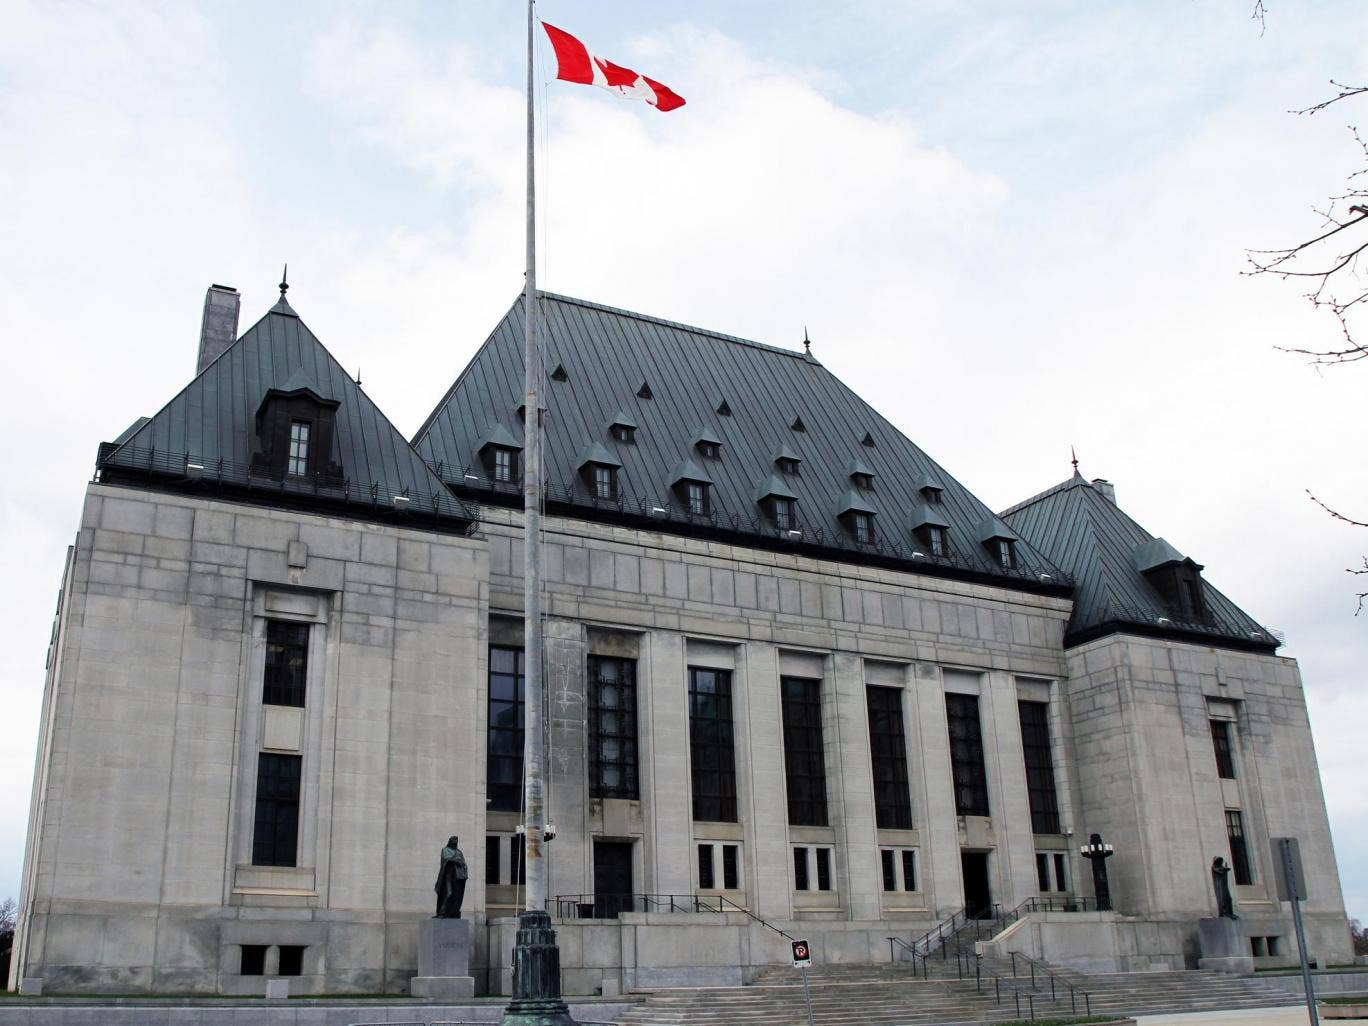 Most Bestiality is Legal, Declares Canada's Supreme Court